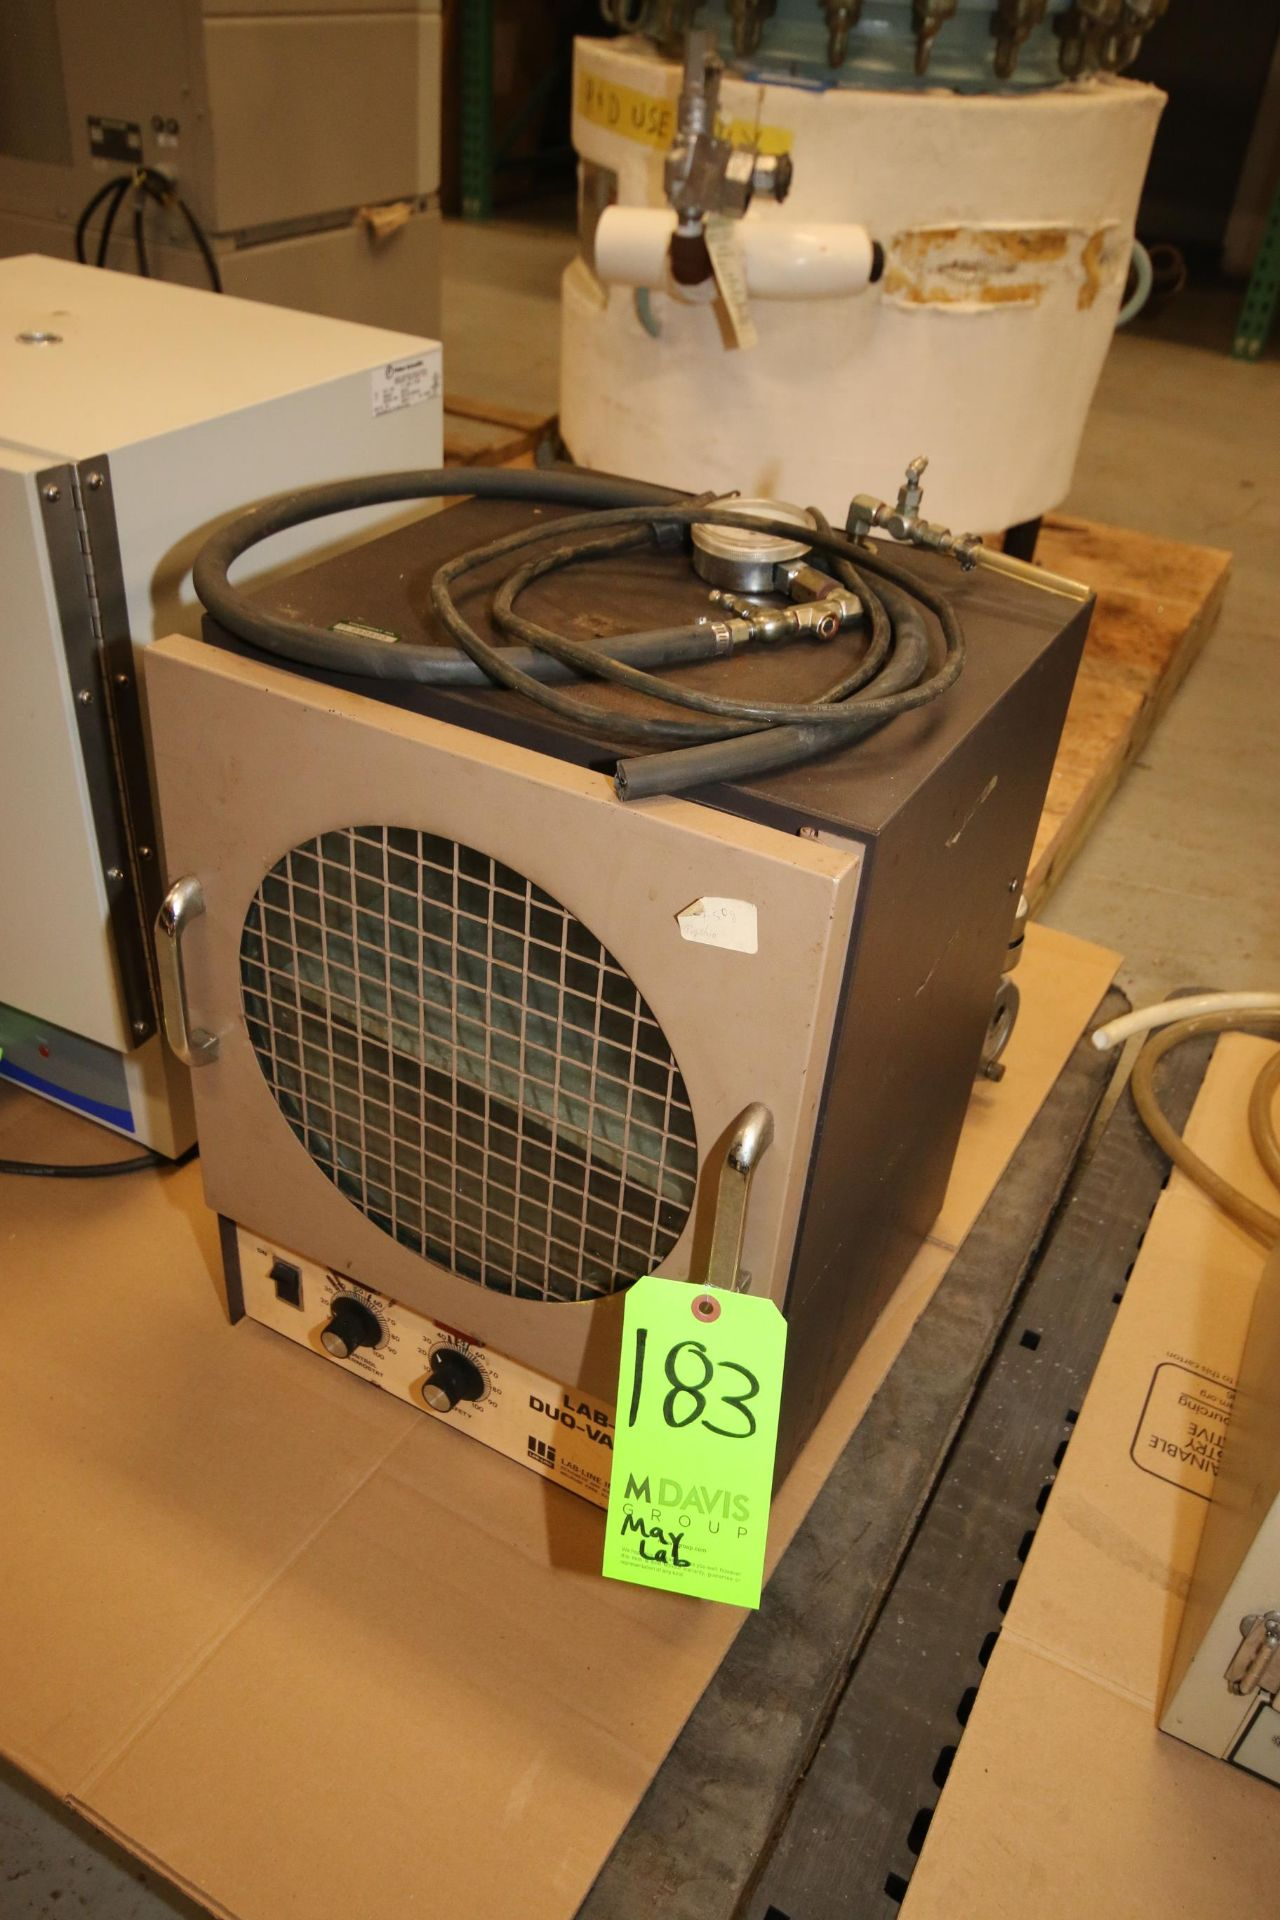 Lot 183 - Lab-Line Duo-Vac Oven, M/N 3620, S/N 0680, 120 Volts, with Vacuum Pump